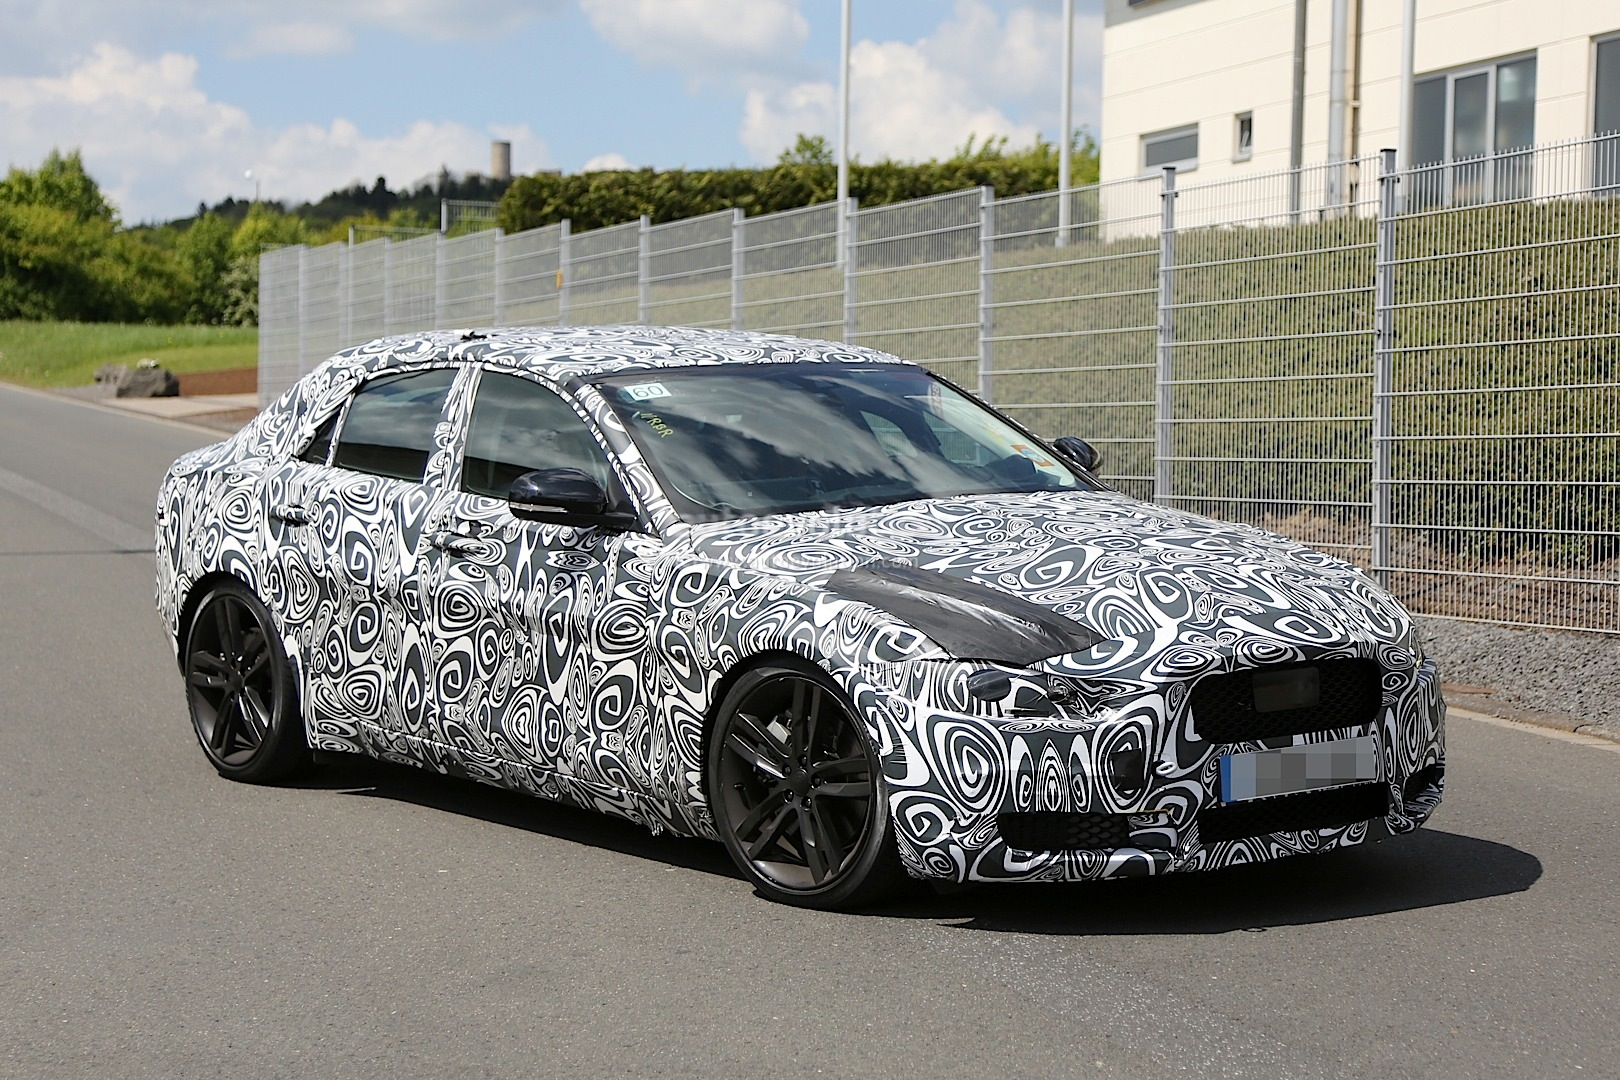 2015 Jaguar XE S Testing with Supercharged V6 Engine - autoevolution